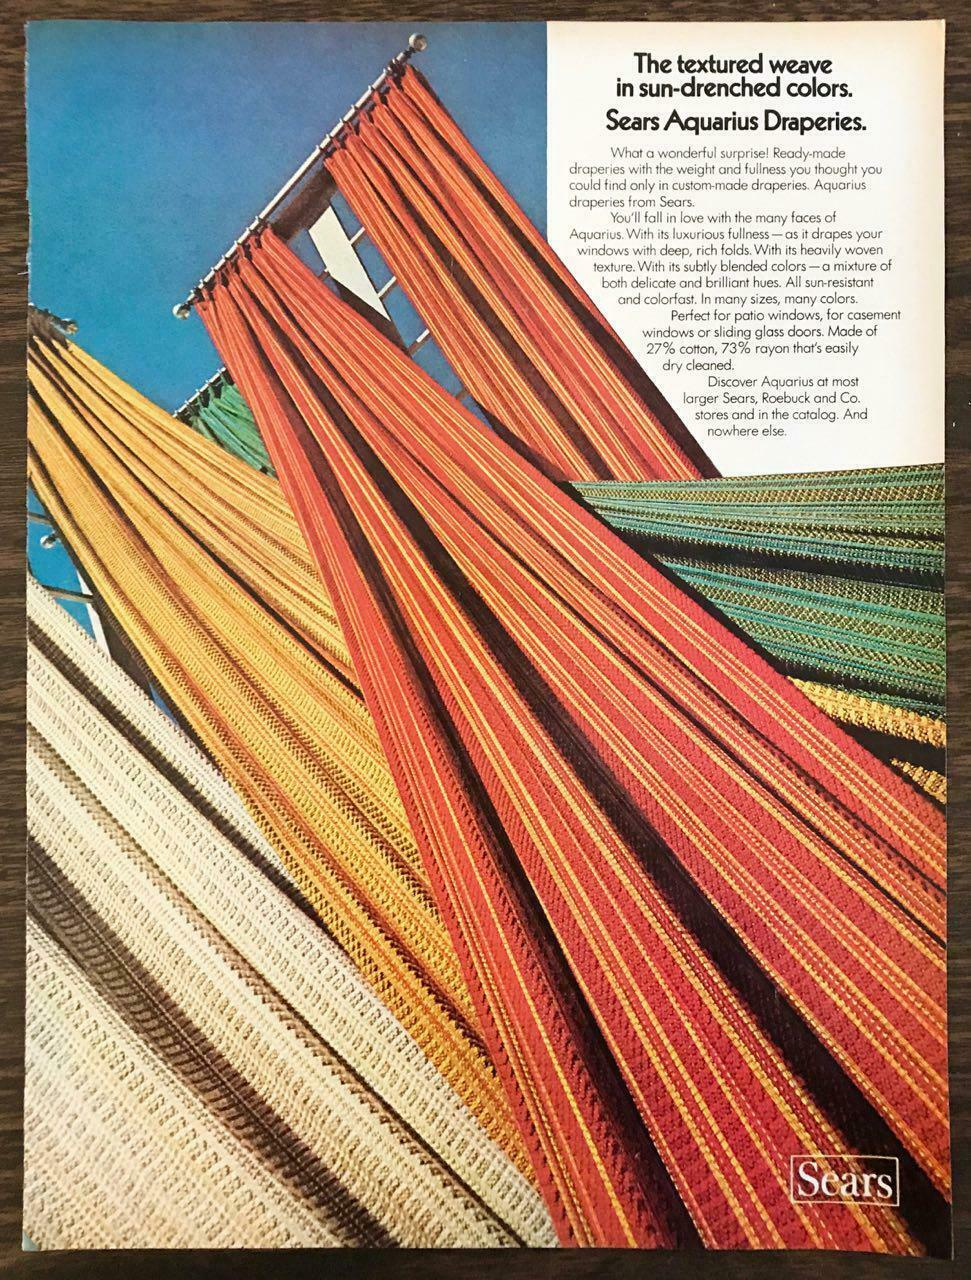 Primary image for 1972 Sears Roebuck Print Ad Aquarius Draperies Textured Weave SunDrenched Colors